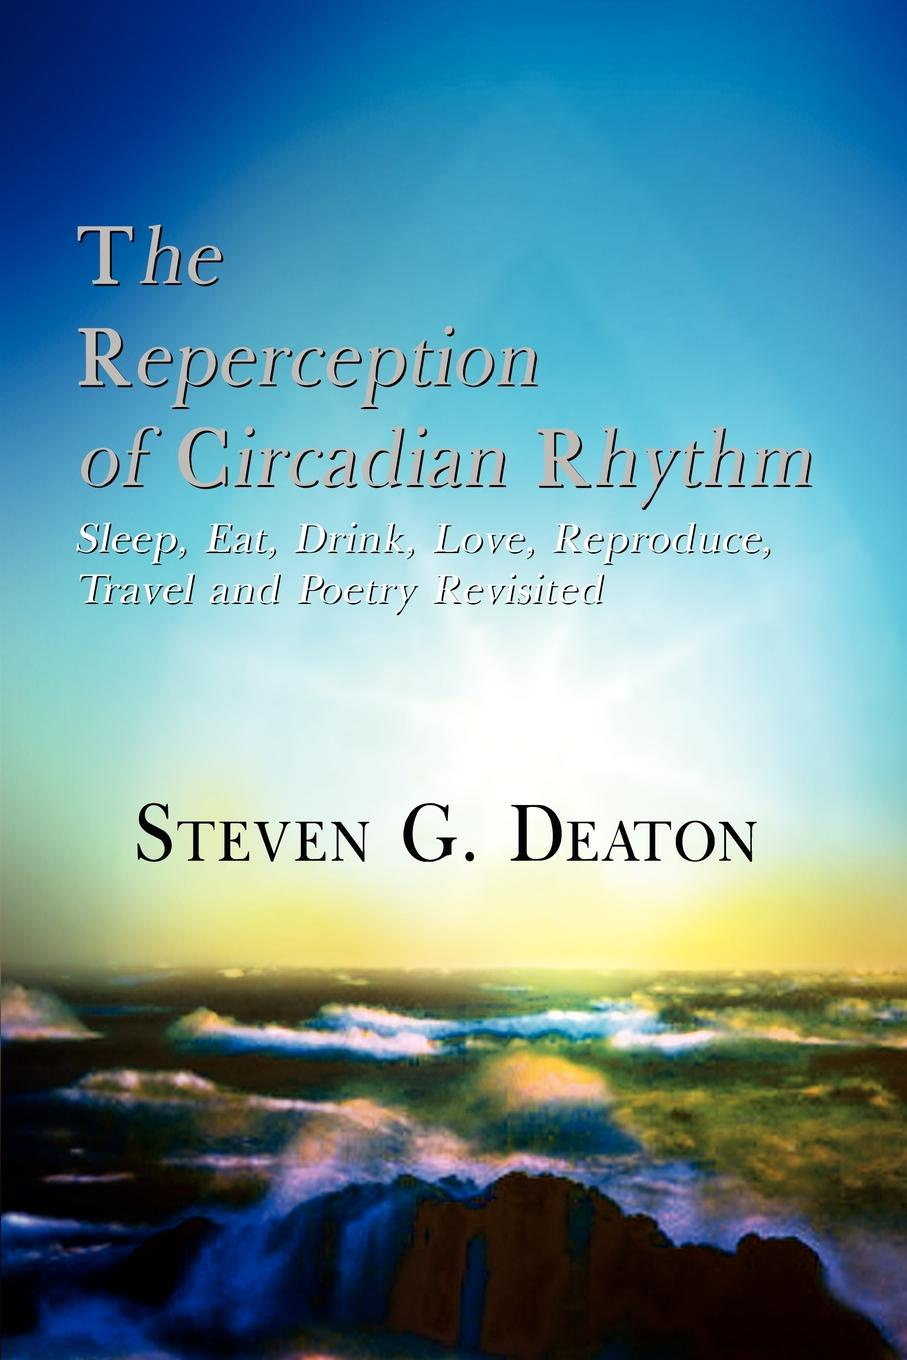 Steven G. Deaton The Reperception of Circadian Rhythm. Sleep, Eat, Drink, Love, Reproduce, Travel and Poetry Revisited hidden dangers in what we eat and drink